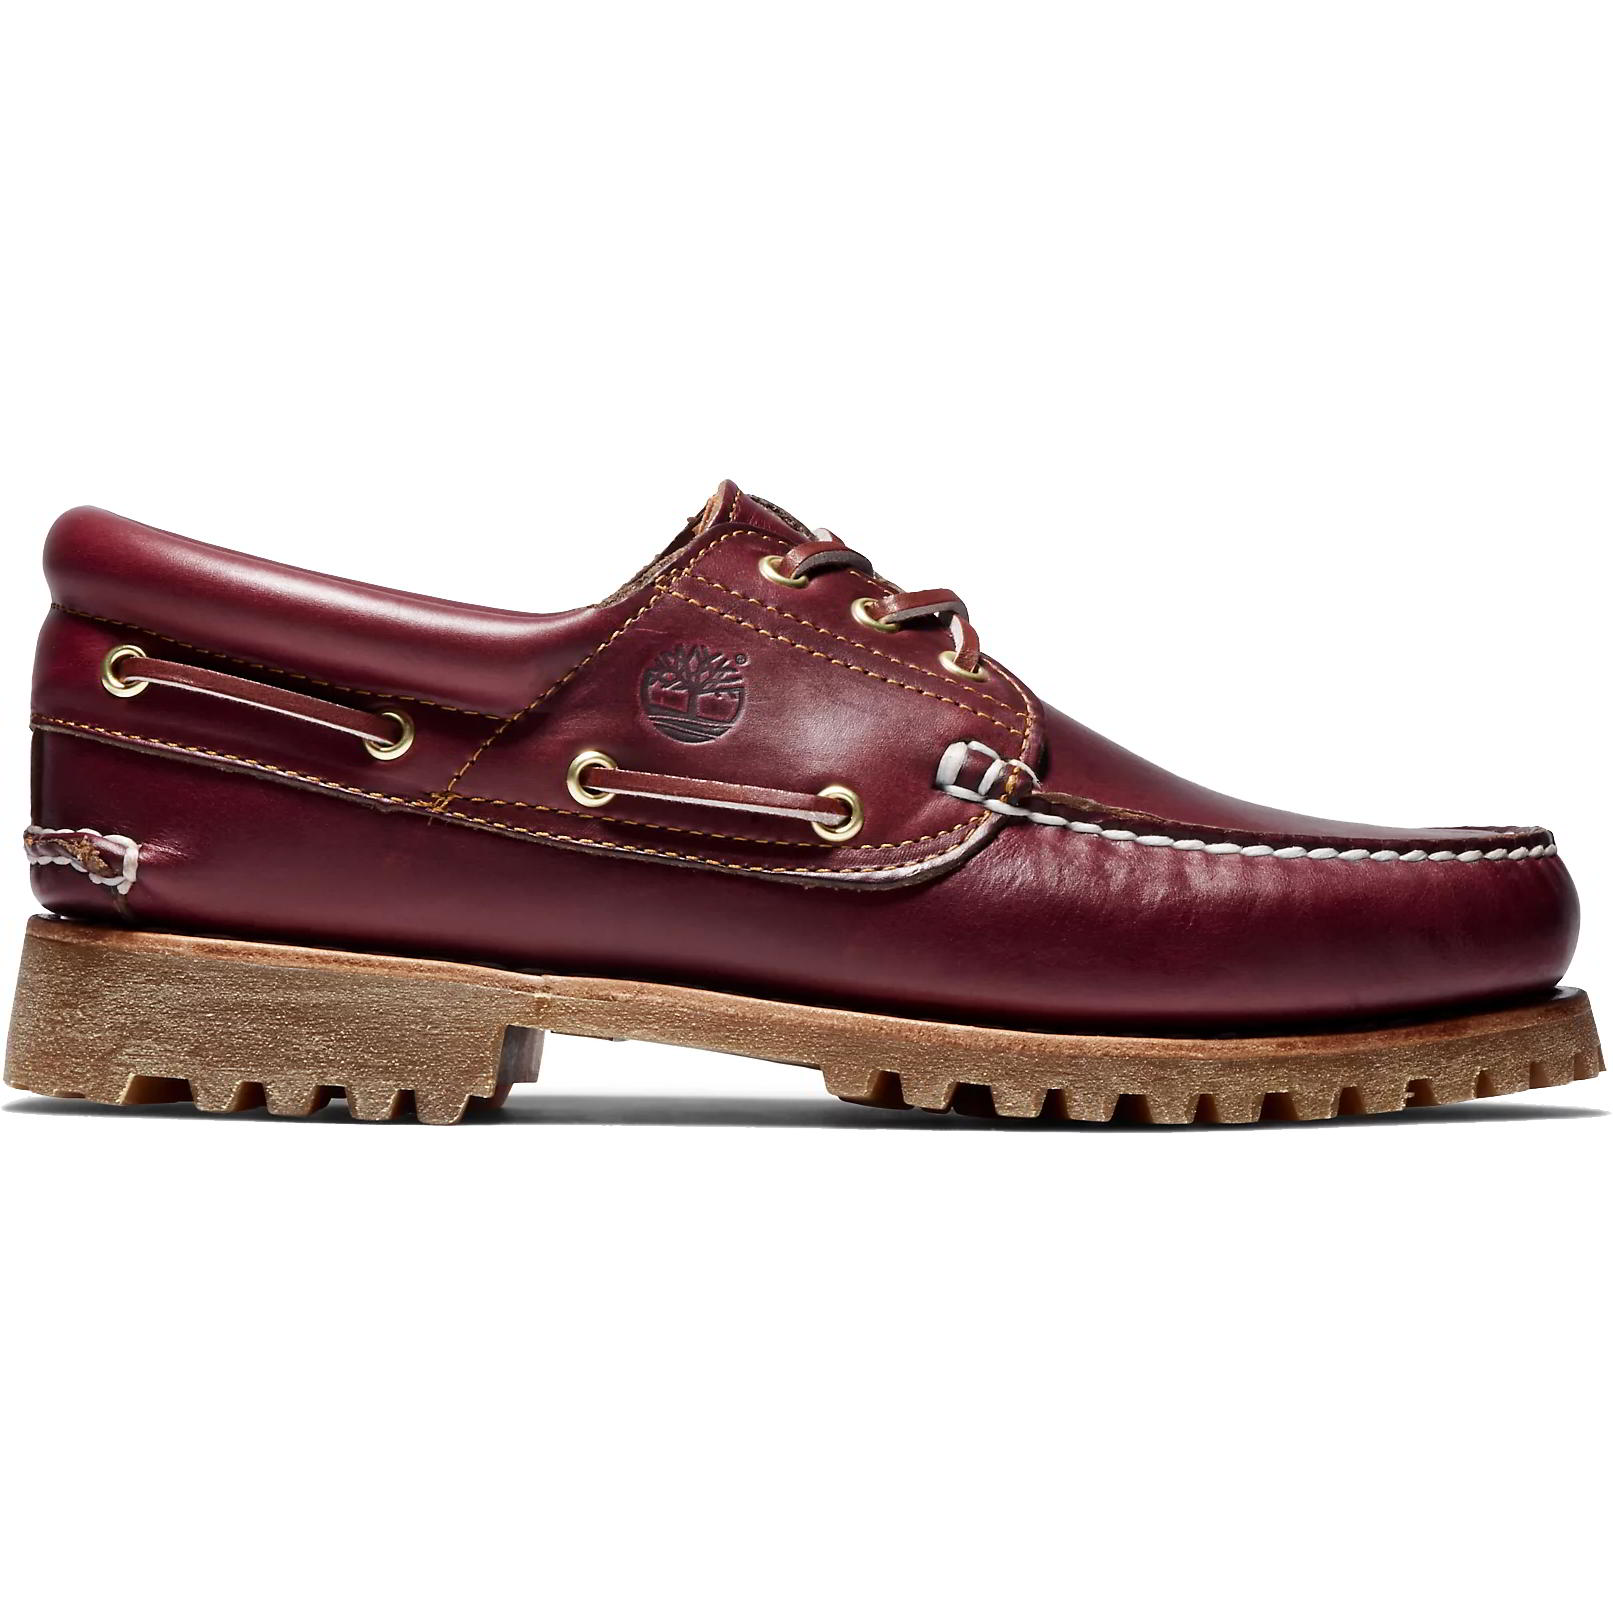 Timberland Mens Heritage Boat Shoes - 50009 - Burgundy